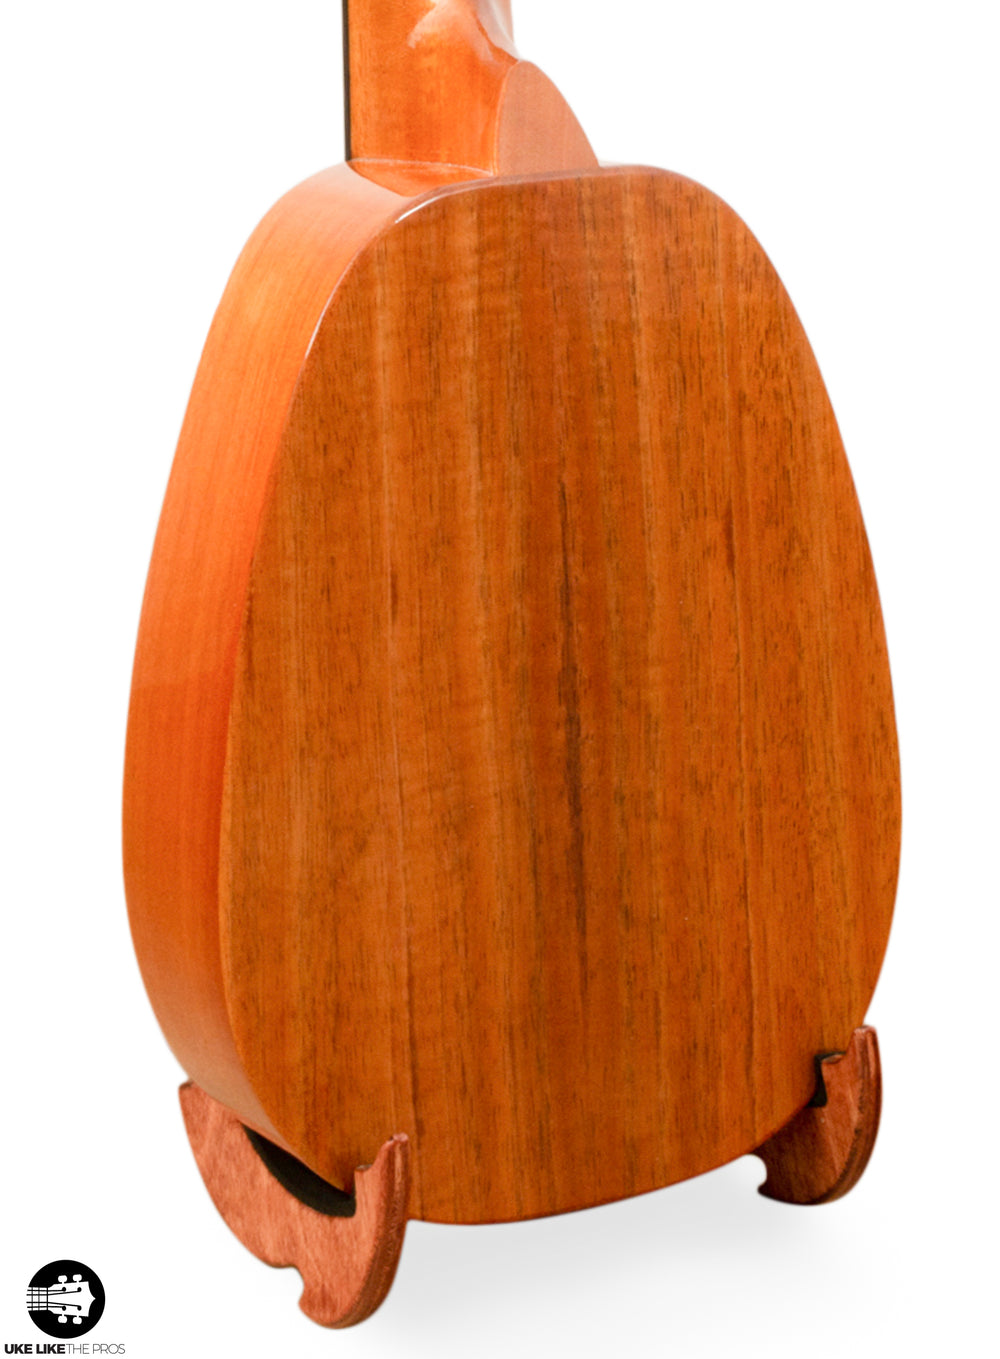 "KoAloha KSM-03 Soprano Longneck Pineapple Ukulele Pack Solid Koa ""Orion"" LIMITED EDITION"